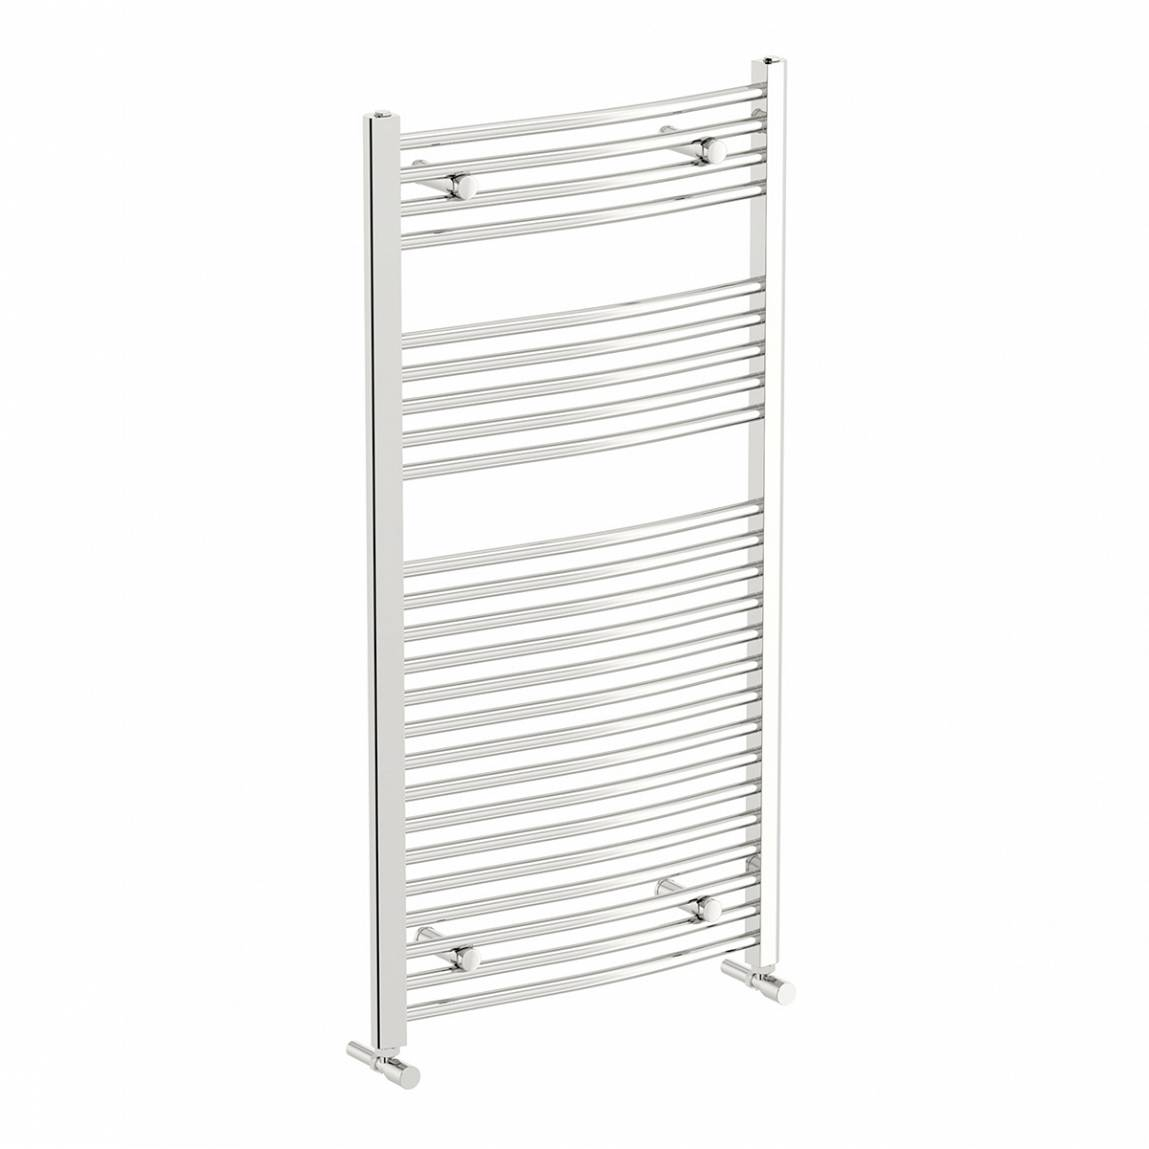 Image of Curved Heated Towel Rail 1150 x 600